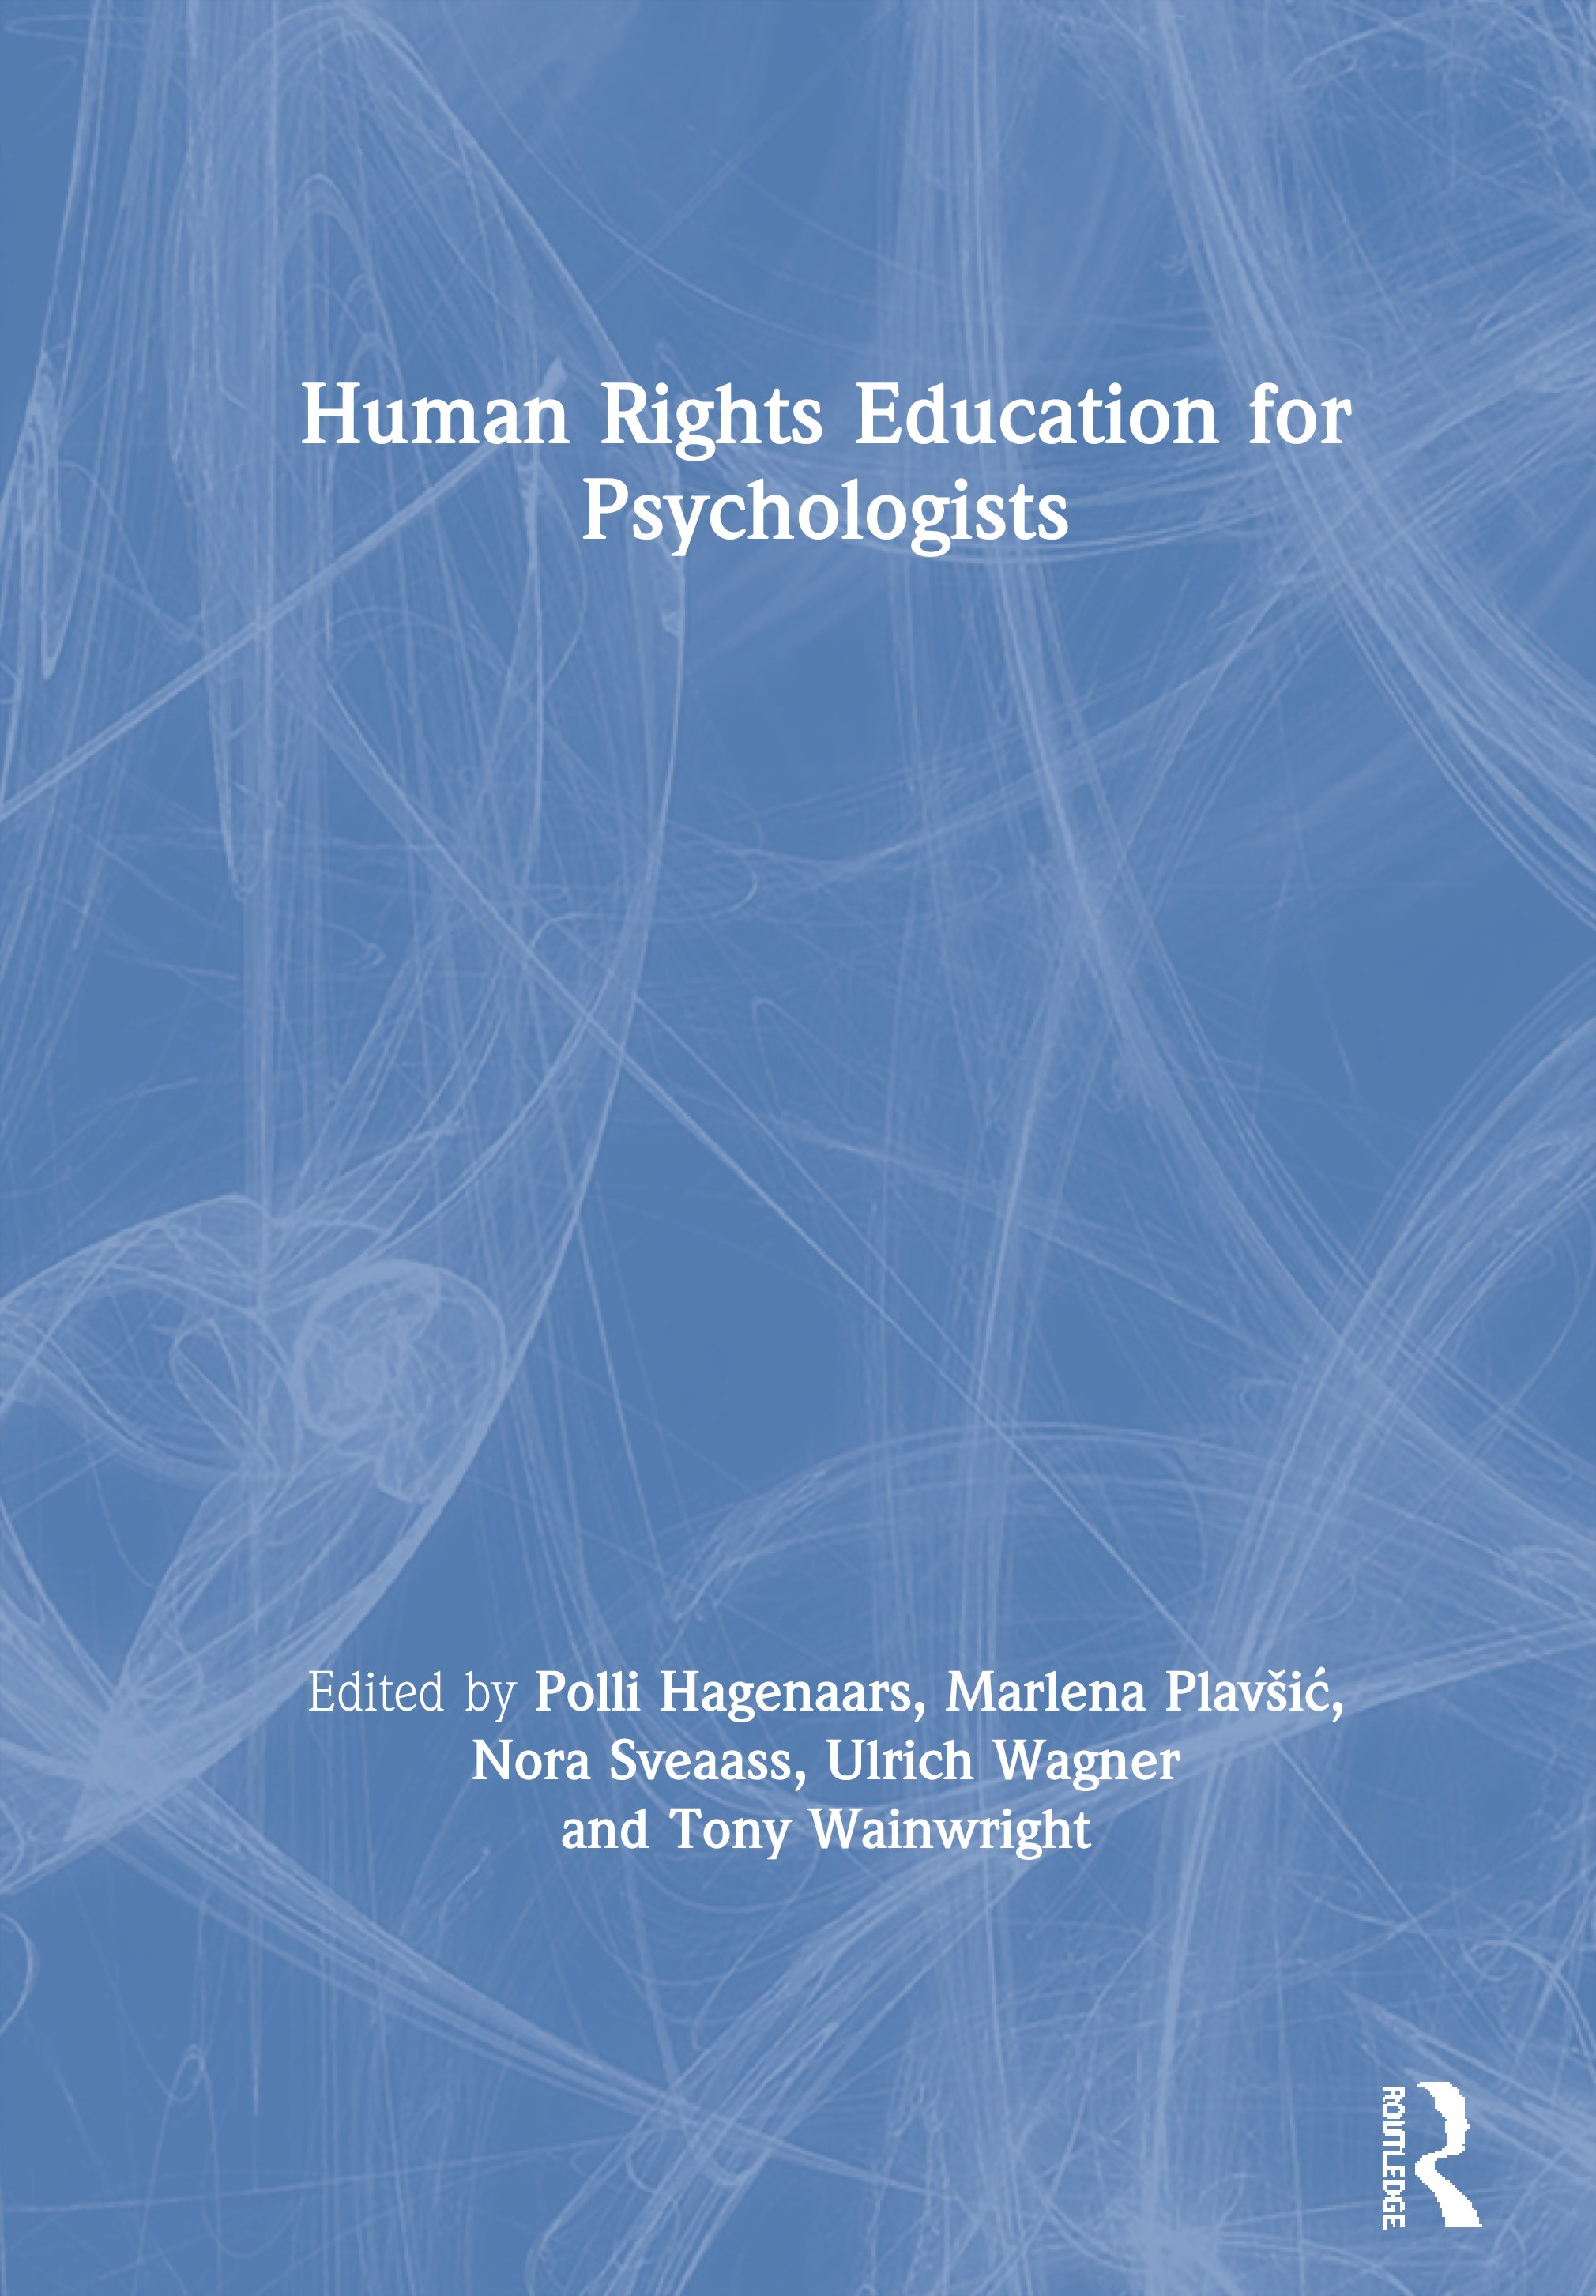 Human Rights Education for Psychologists book cover